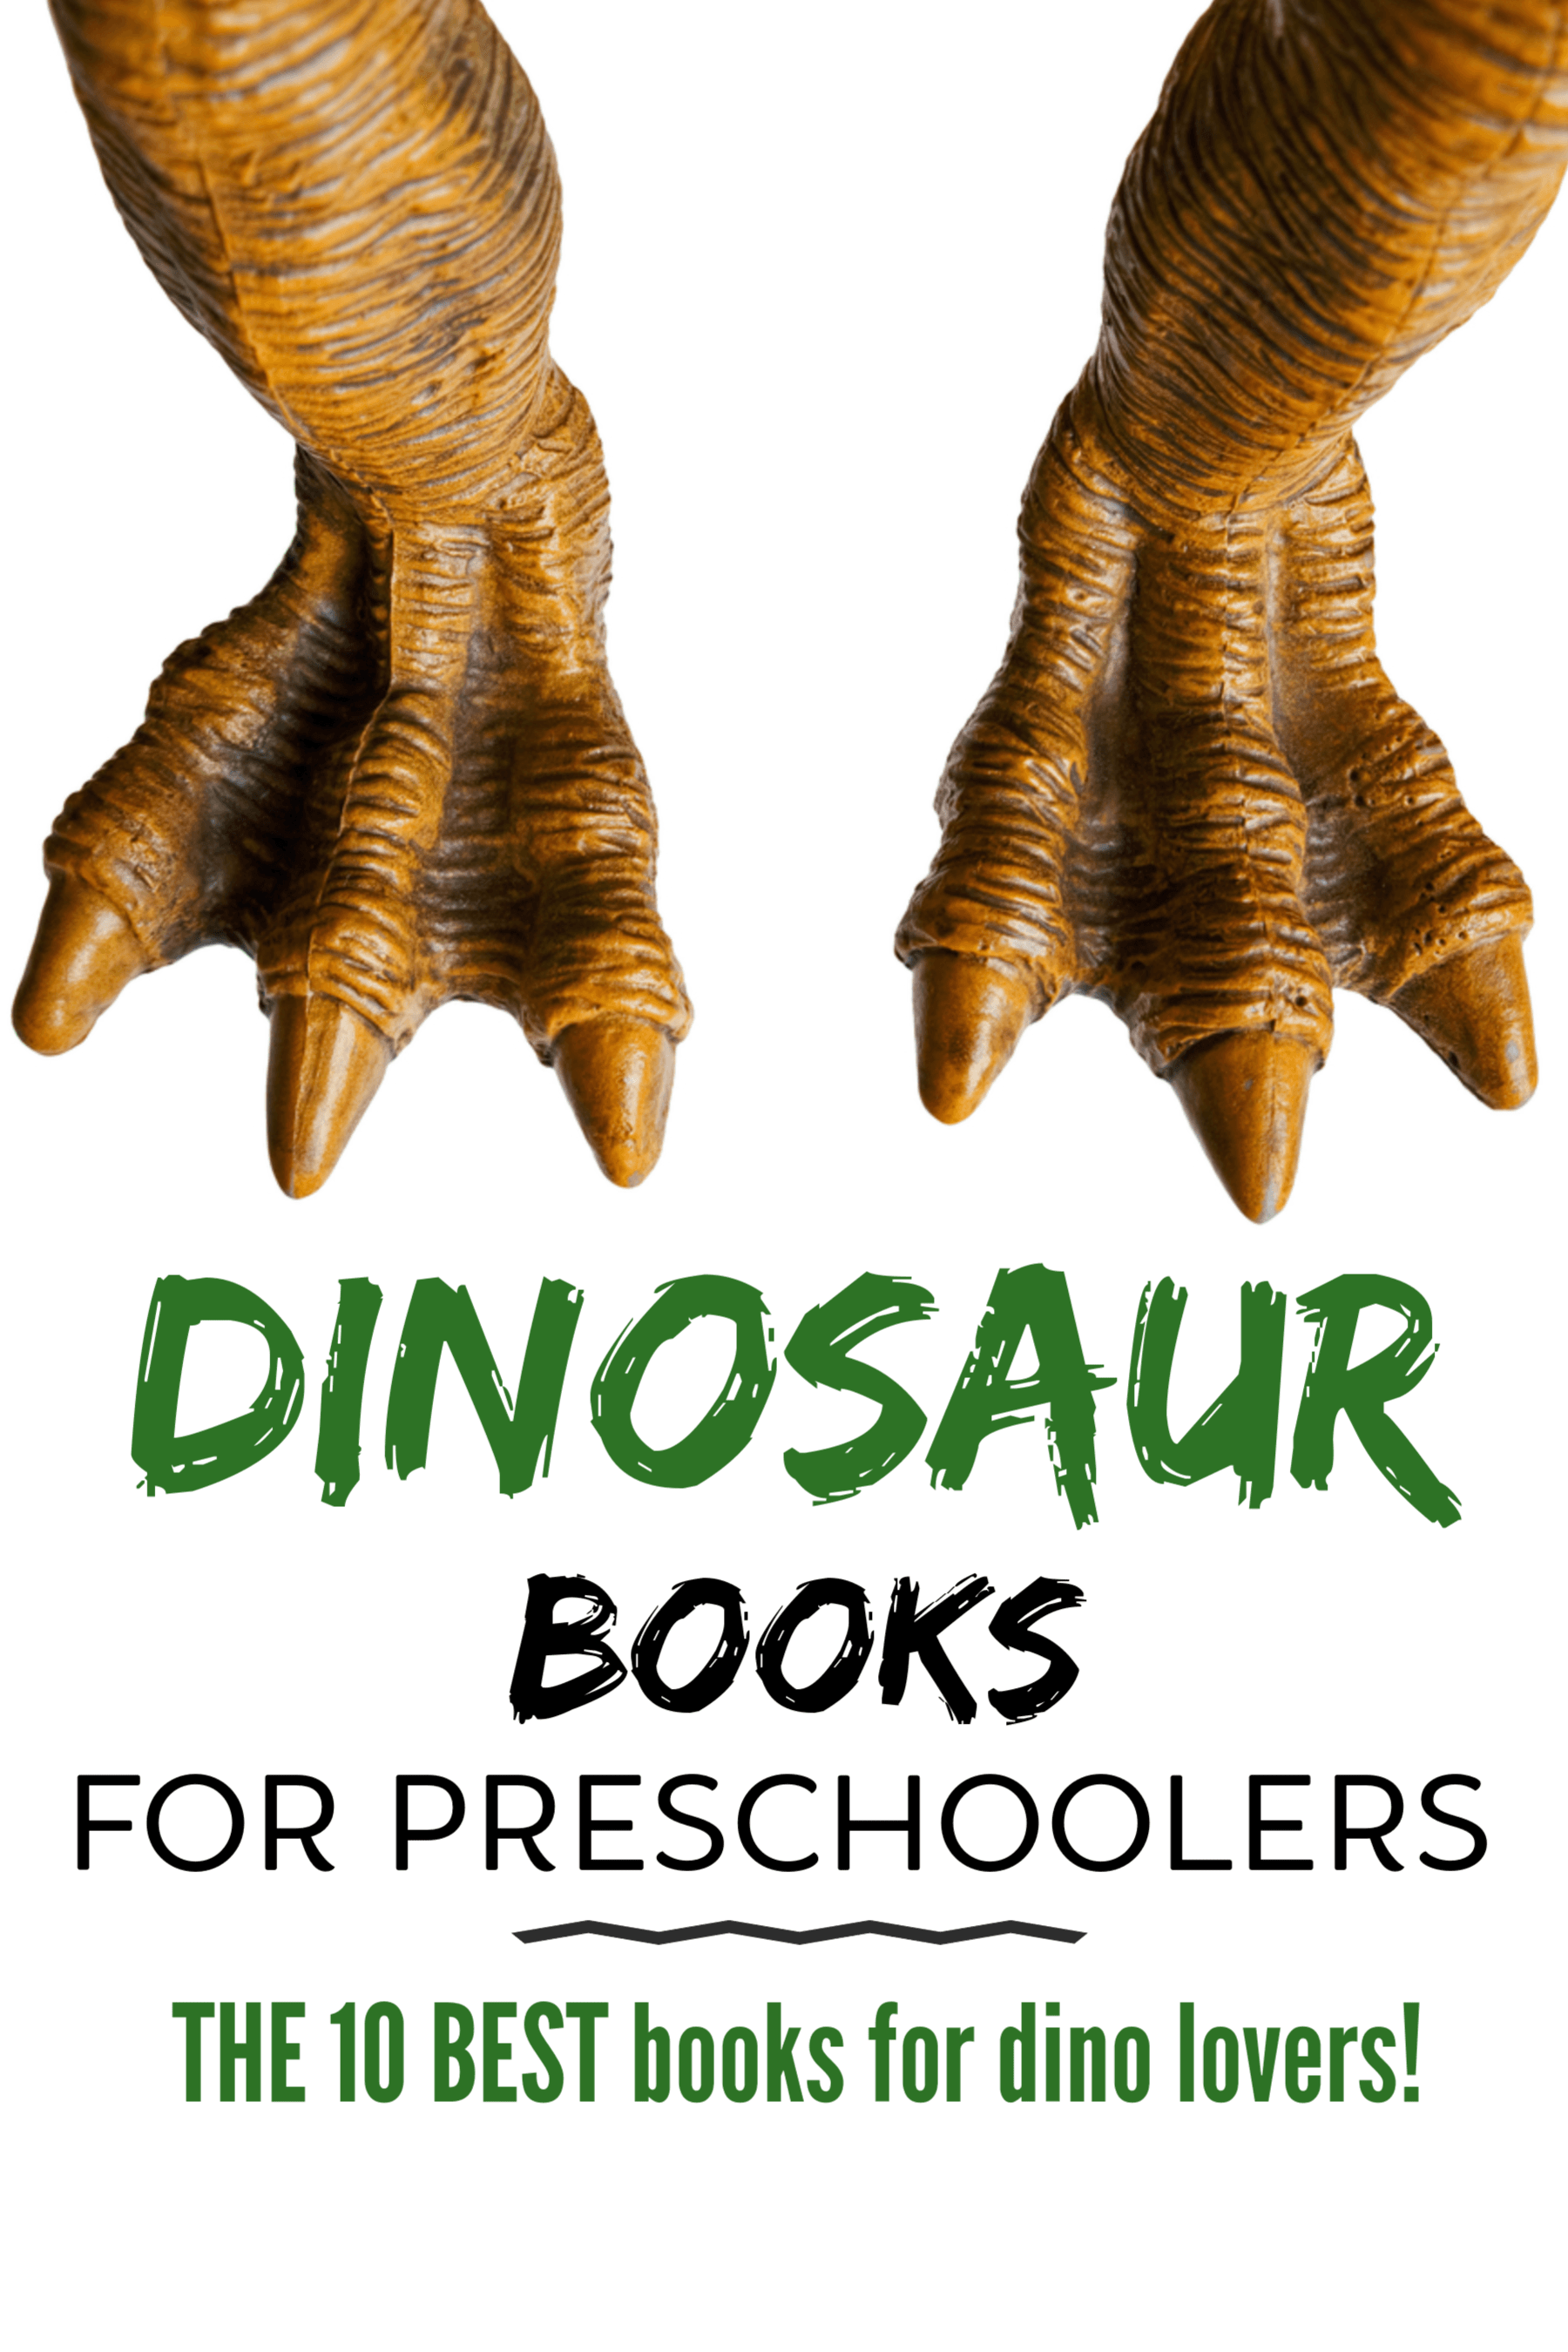 If you've got a little dino lover in your house, you need these dinosaur books for preschoolers. Have prehistoric fun with dinosaur books for kids! #booksforkids #kidsbooks #dinosaur #dinosaurbooks #booksaboutdinosaurs